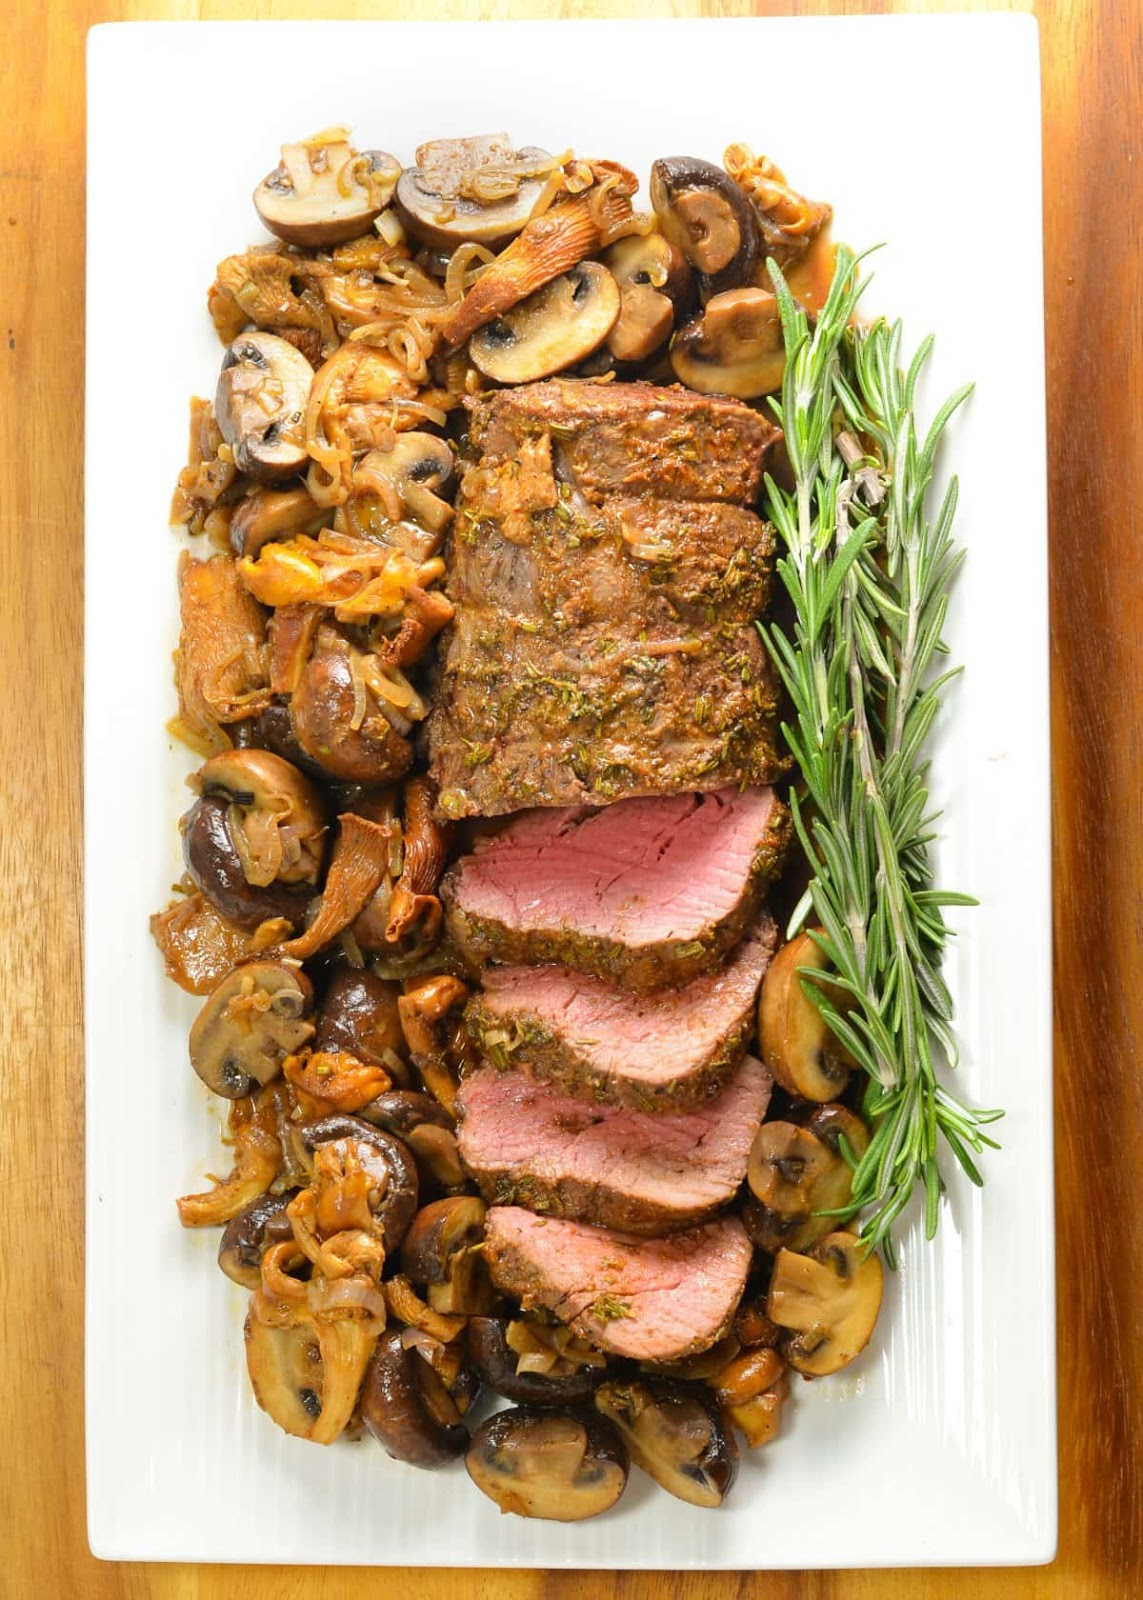 Tender Beef Tenderloin Roast with a delicious herb butter crust and easy to make sautéed mixed mushrooms is an elegant yet easy to make recipe that melts in your mouth. Recipe from Serena Bakes Simply From Scratch.